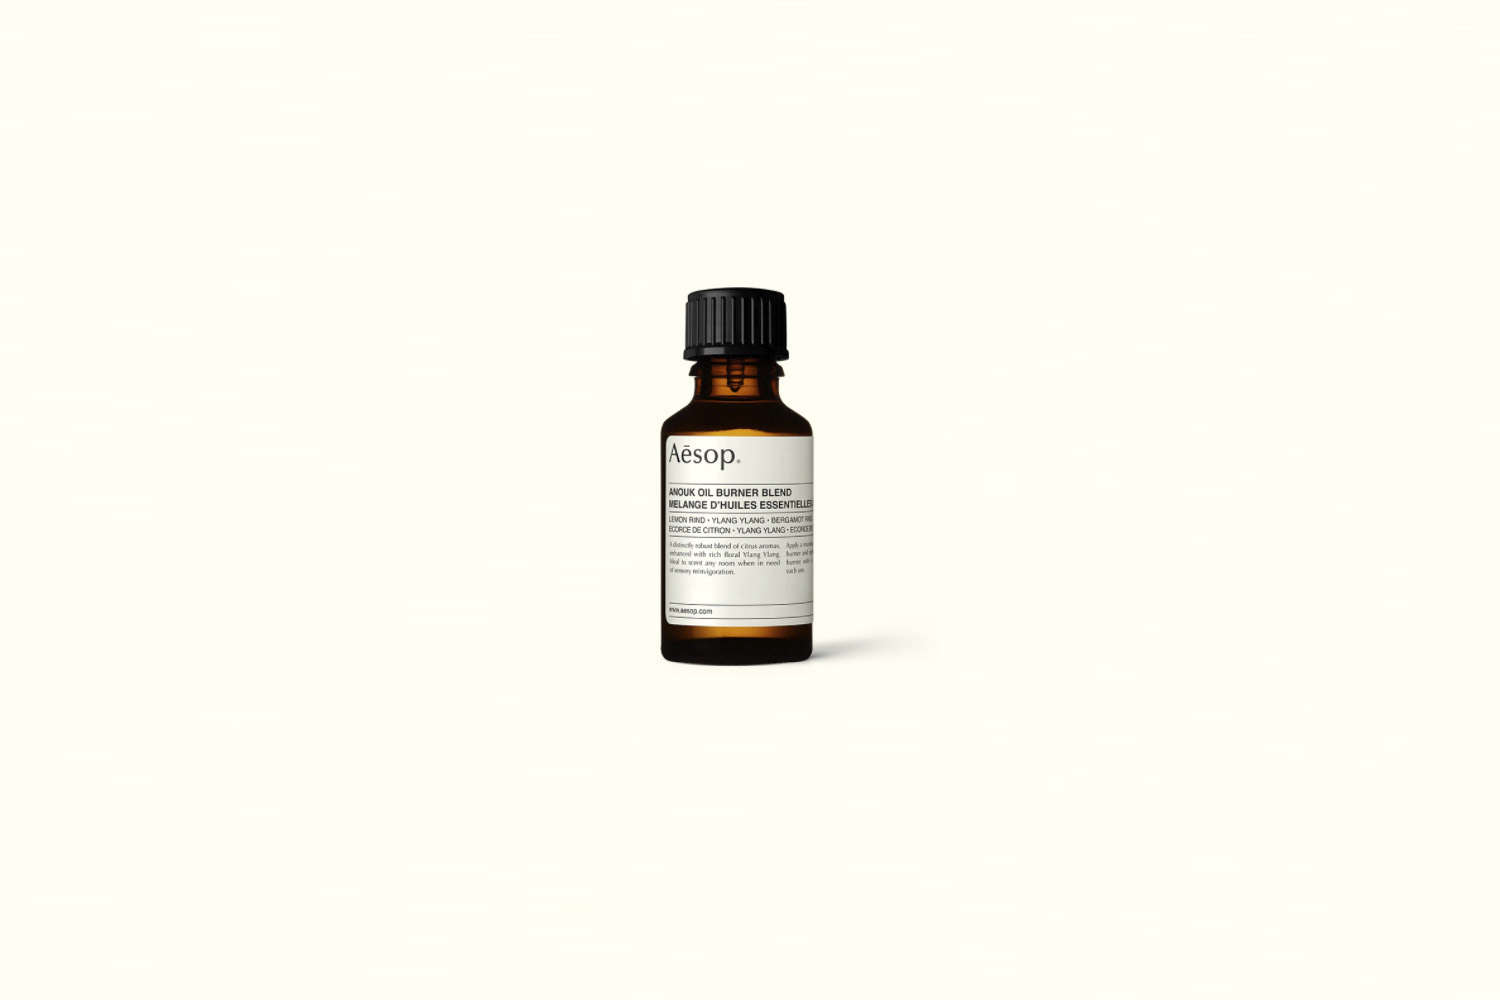 Remodelista Gift Guide 2020 Gifts for the Home Fragrance Snob Aesop&#8\2\17;s Anouk Oil Burner Blend (\$39) is a blend of citrus aromas including bergamot rind. The oil is designed to use with an oil burner such as Aesop&#8\2\17;s Brass Burner (\$\170).